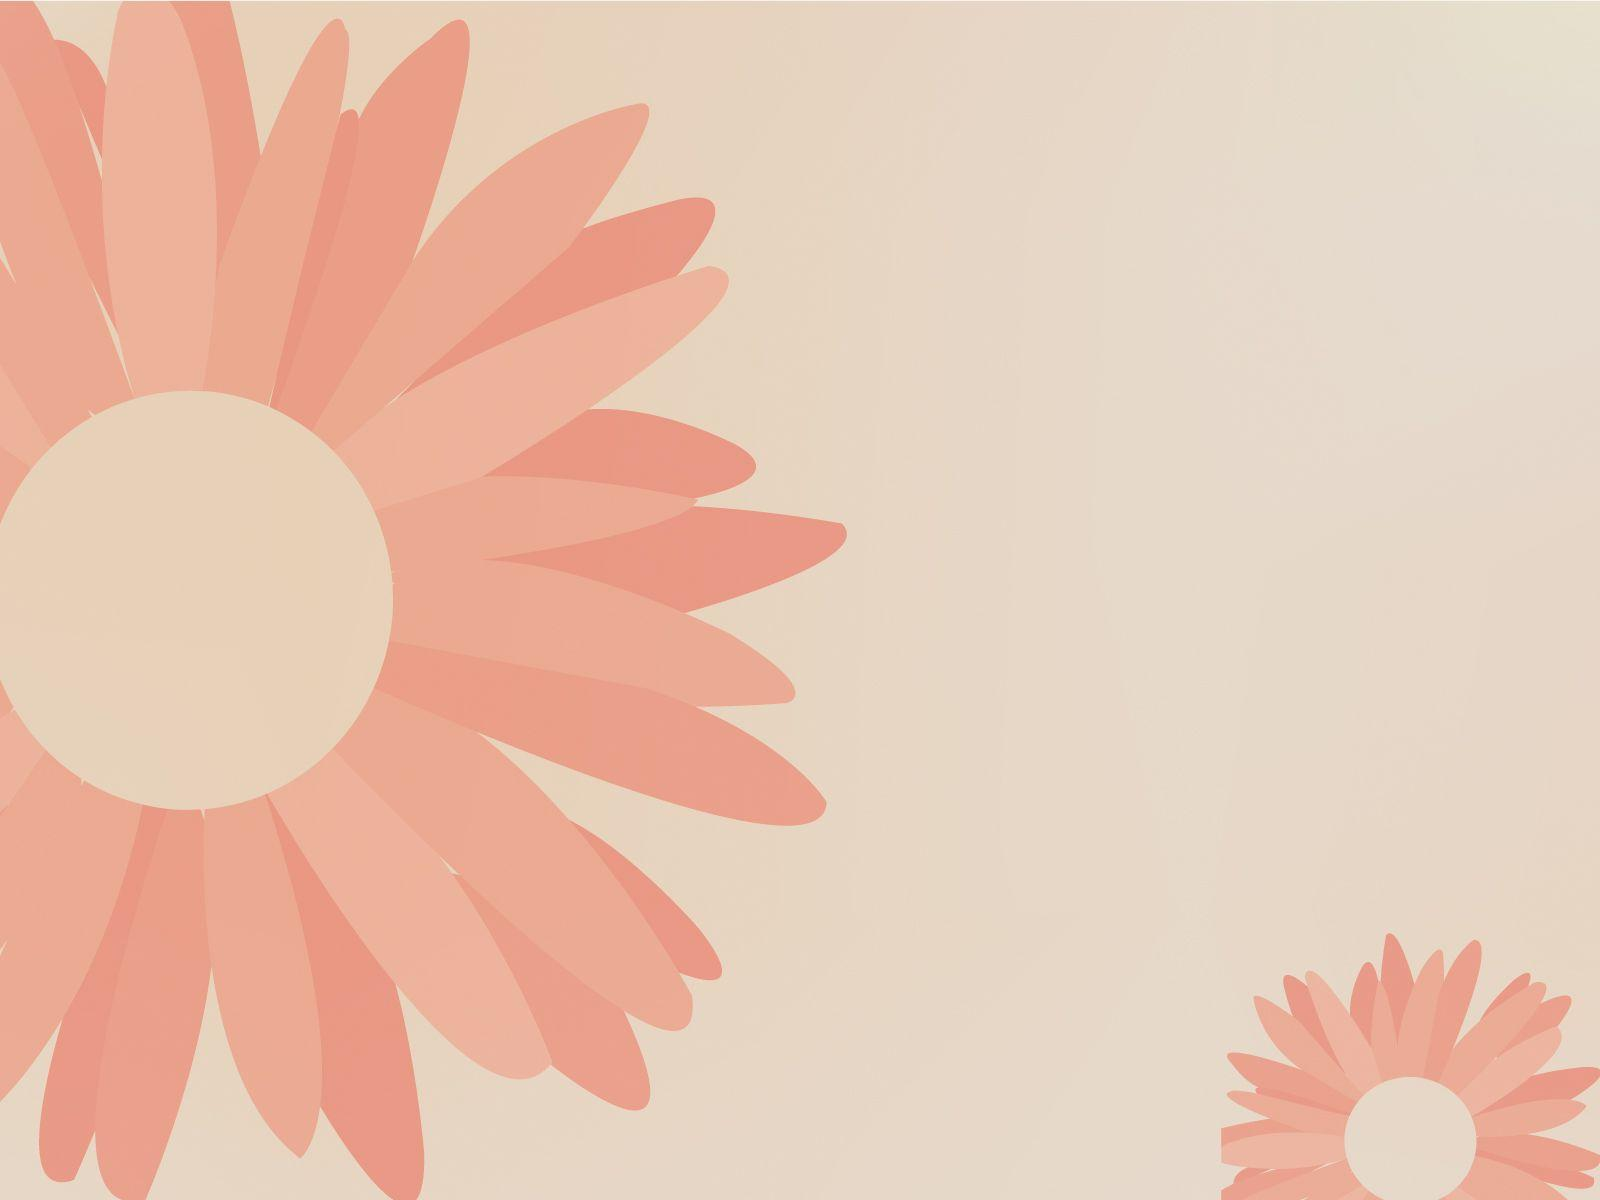 backgrounds style powerpoint 2016 color pink